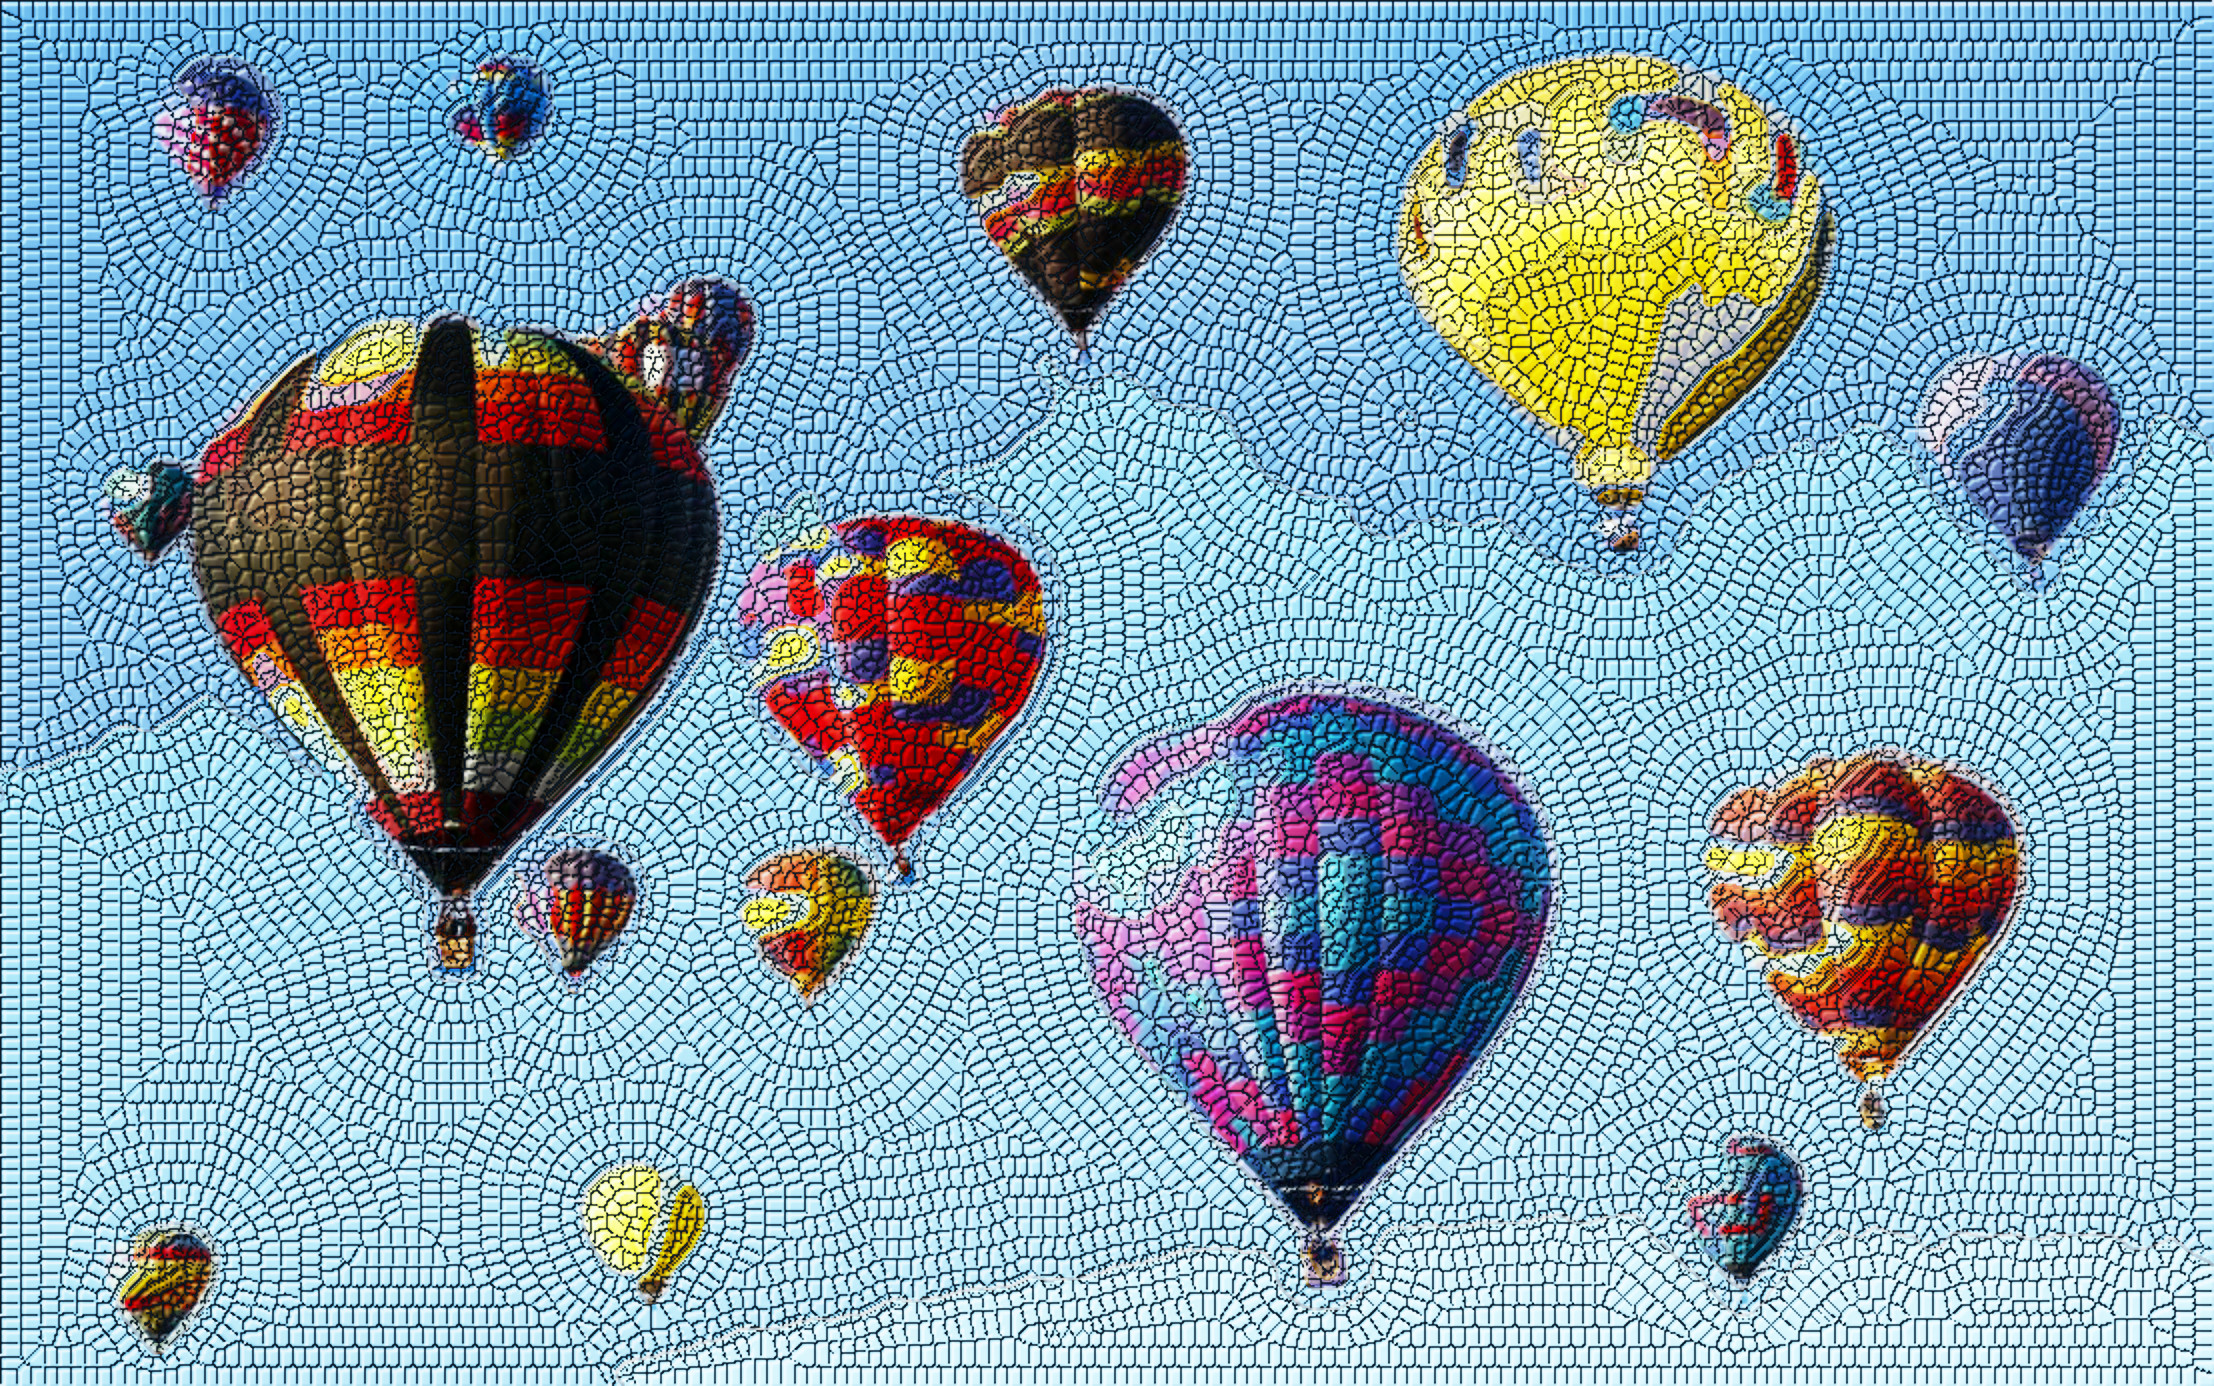 colorful_hot_air_balloon_DN_MosaicLyleStyle.jpg